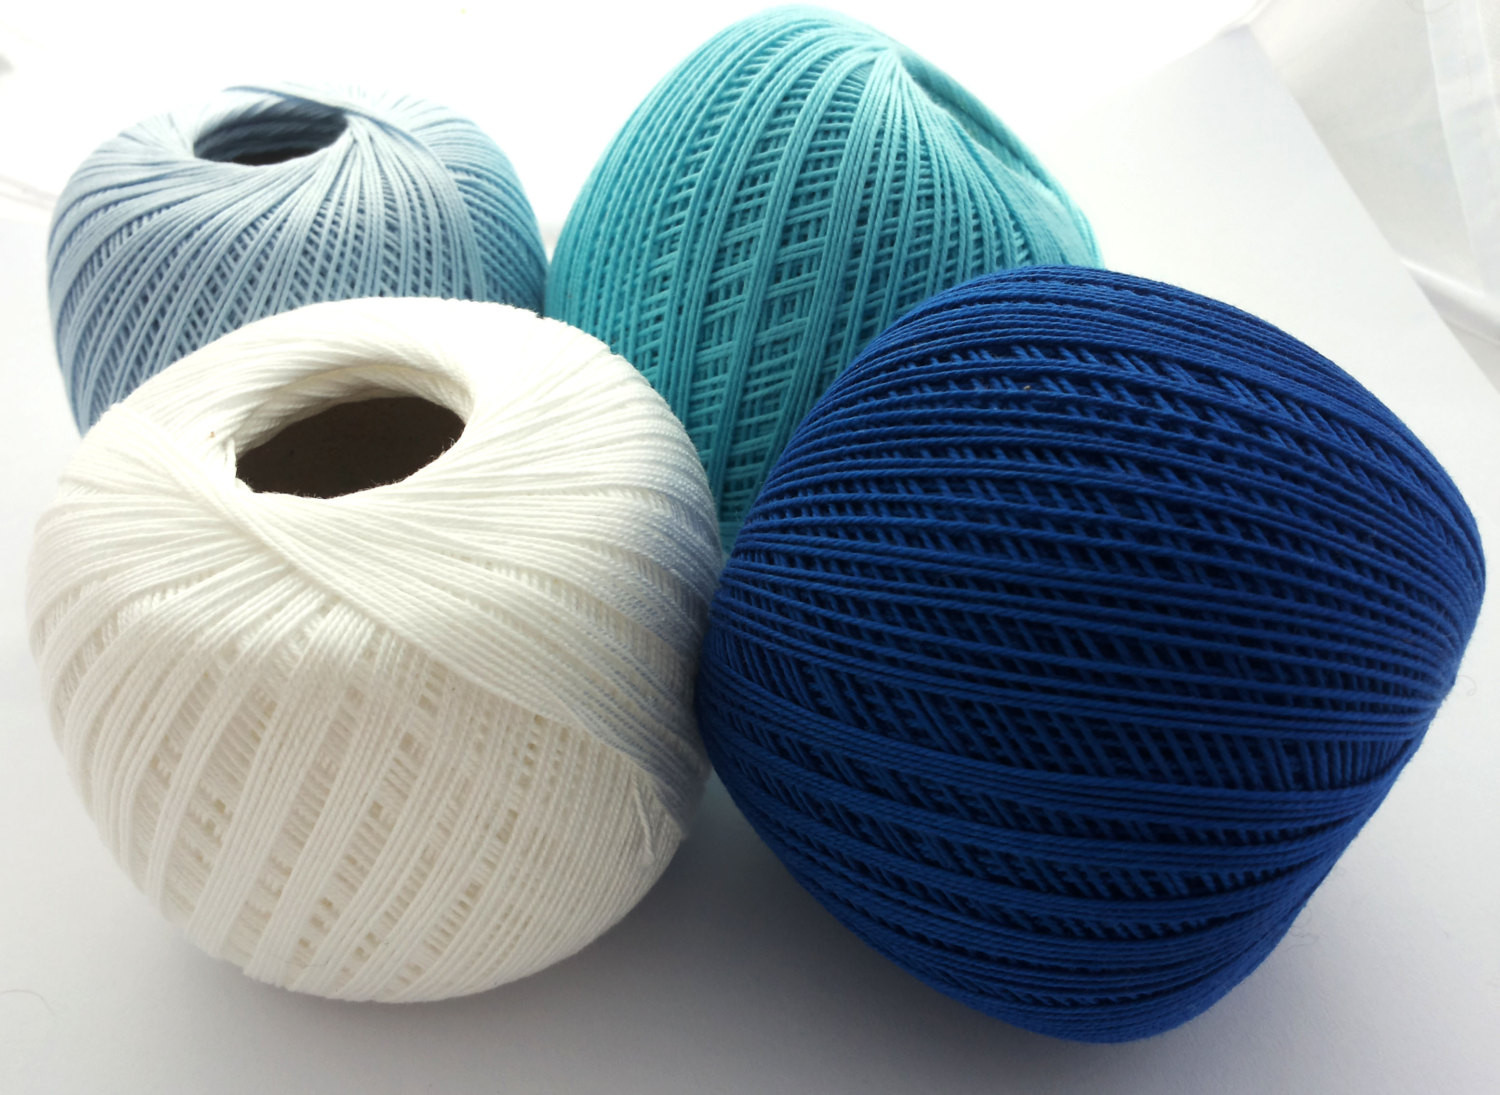 Crochet Thread Size 10 Beautiful 4 X Crochet Cotton Yarn 10 Size 10 Thread 3 Ply Cotton Of Innovative 40 Pics Crochet Thread Size 10